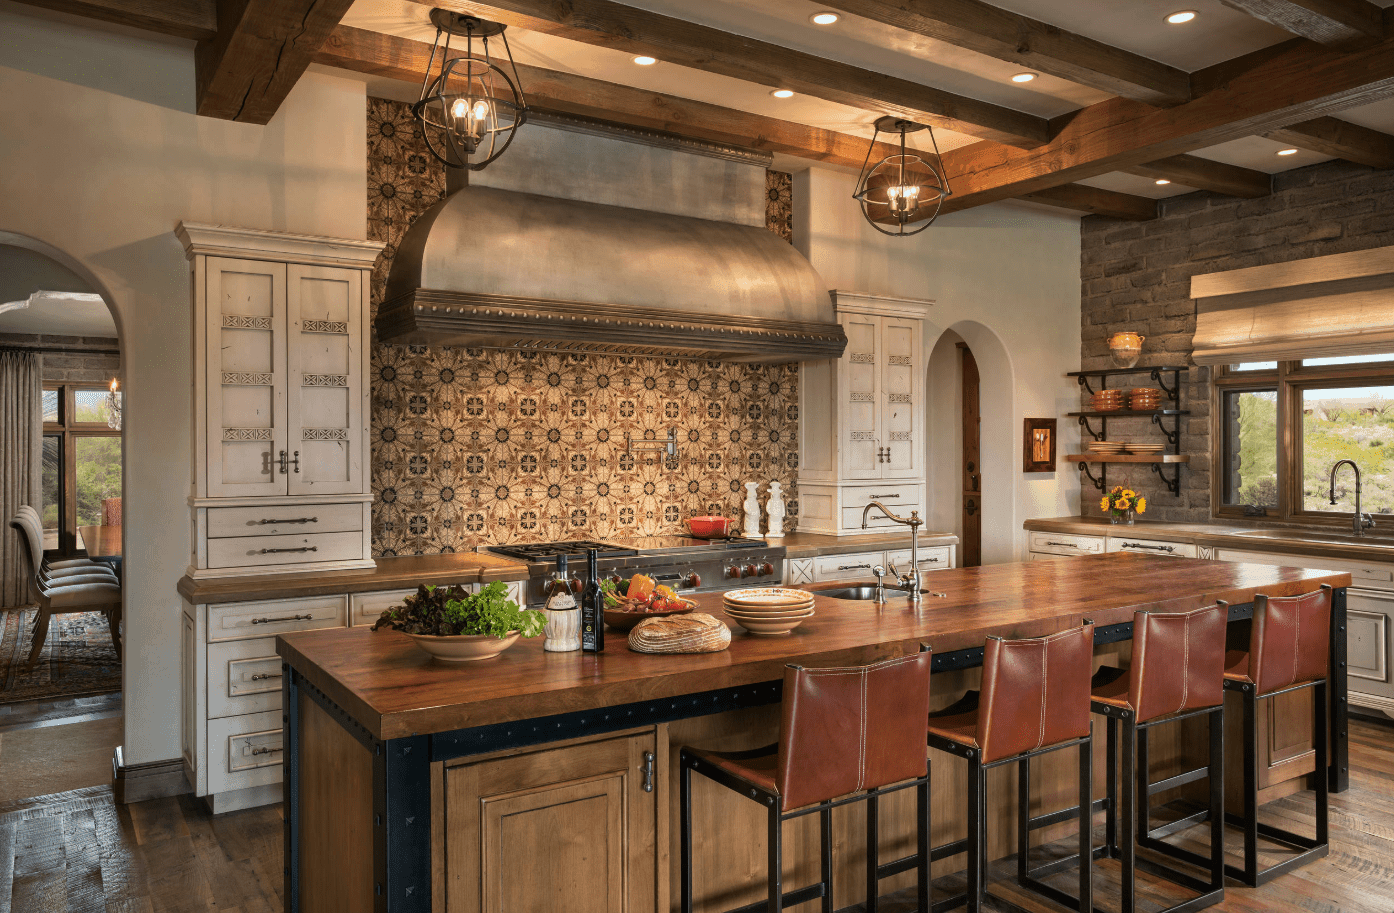 Attractive kitchen with a vent hood fixed to an eye-catching patterned backsplash. It includes a kitchen island bar topped with wooden counter and fitted with a round sink.